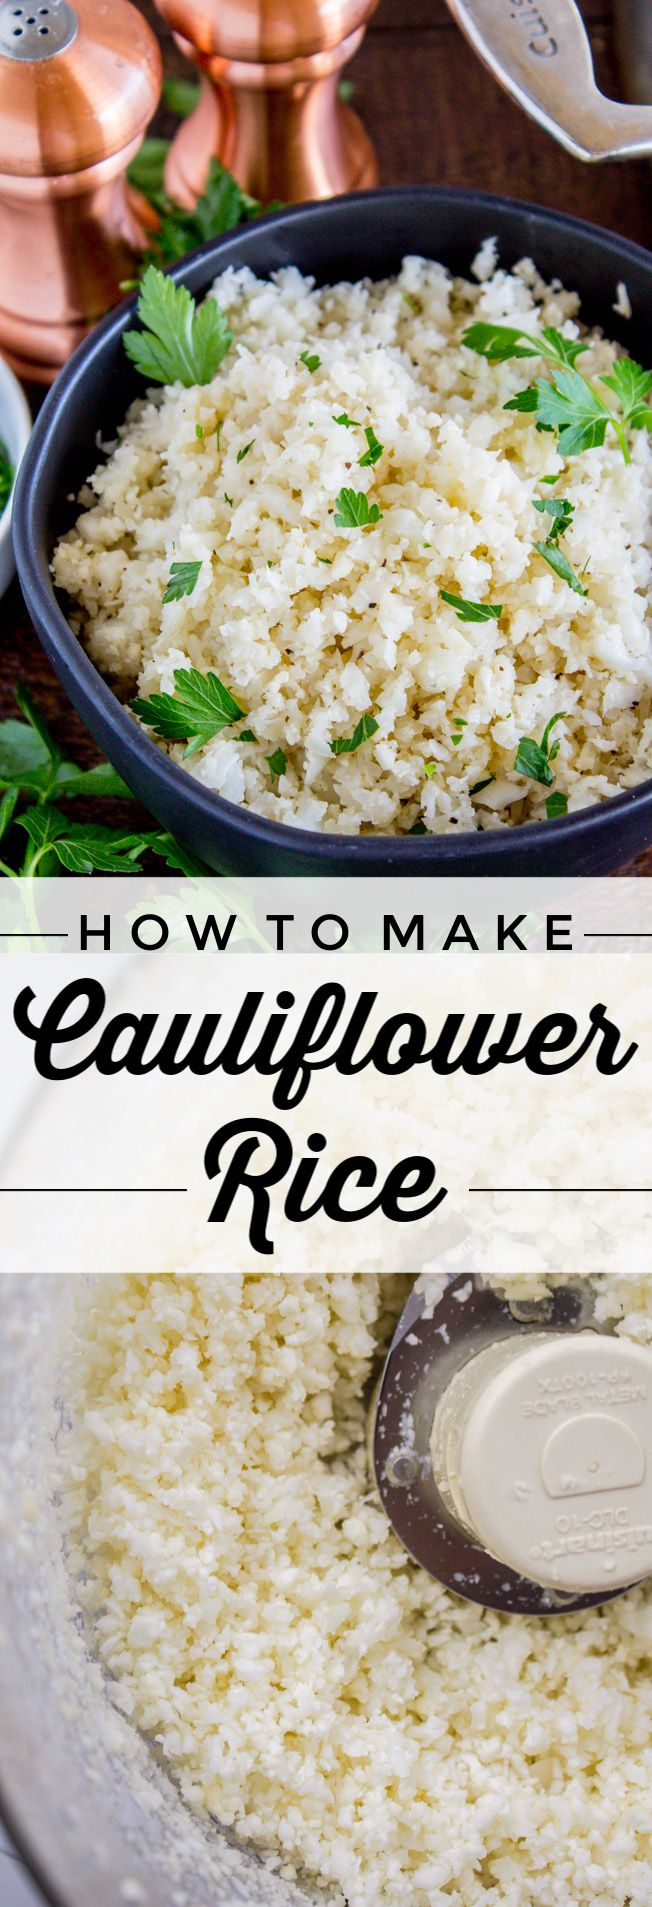 How to Make Cauliflower Rice from The Food Charlatan. Does Cauliflower Rice tast…